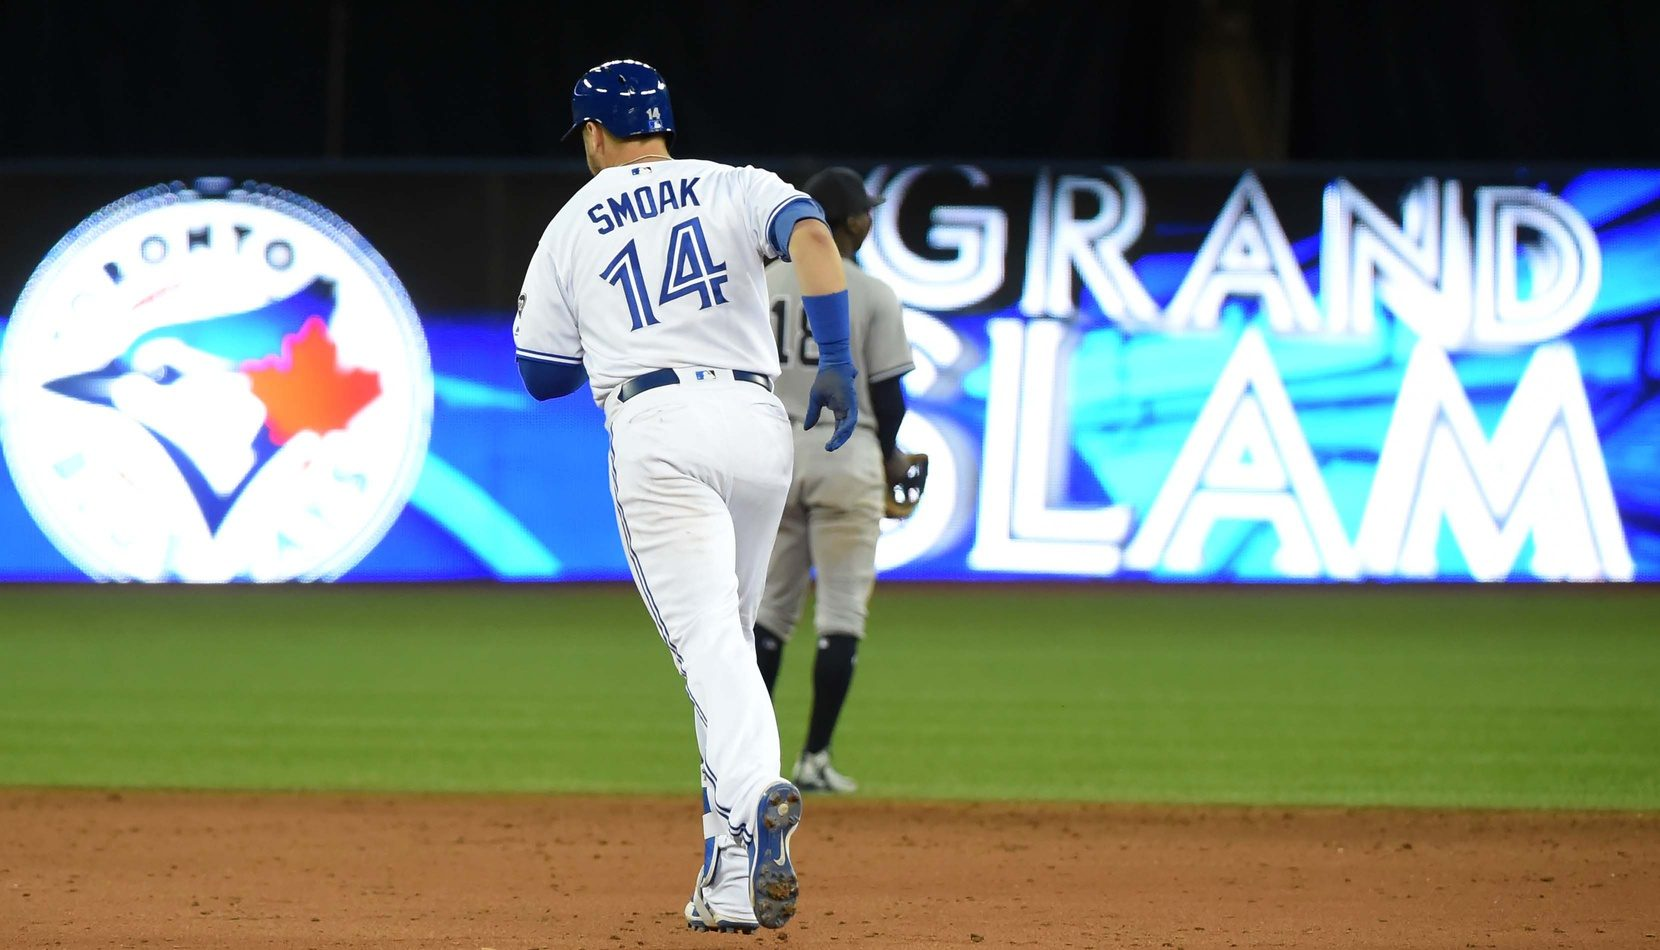 Smoak-grand-slam-e1538355179356